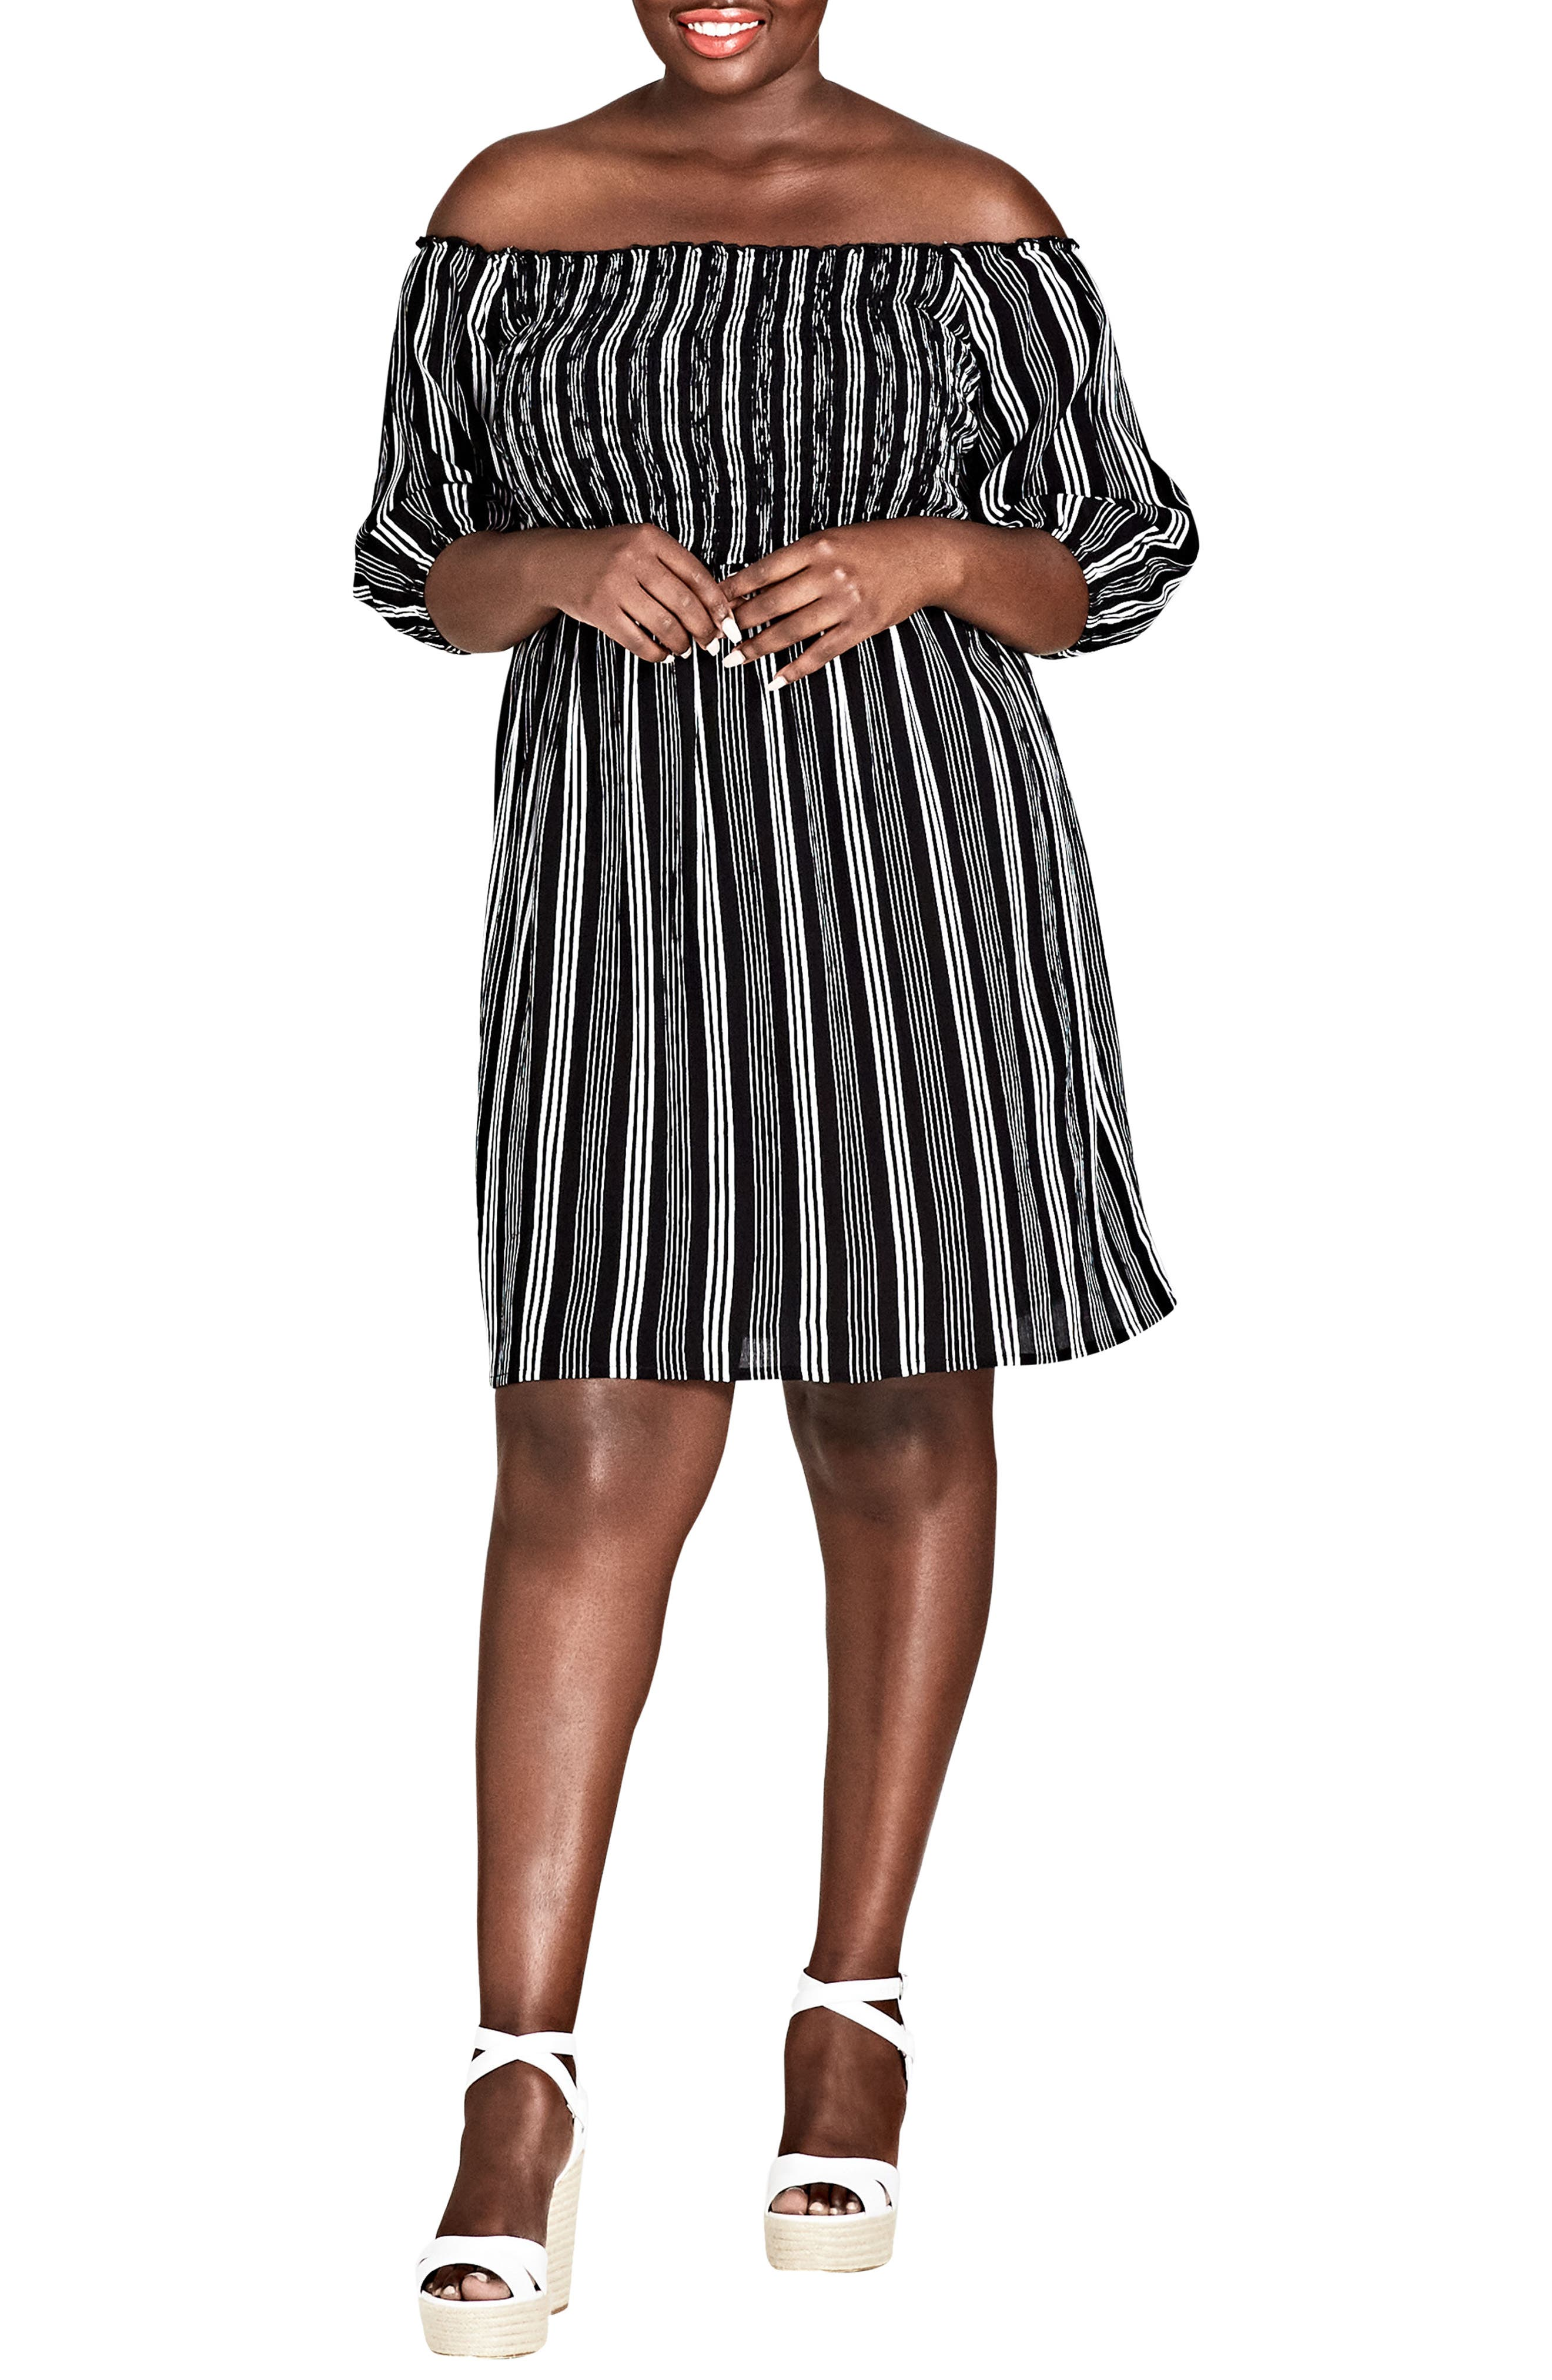 Stripe Play Off the Shoulder Dress,                             Main thumbnail 1, color,                             STRIPE PLAY